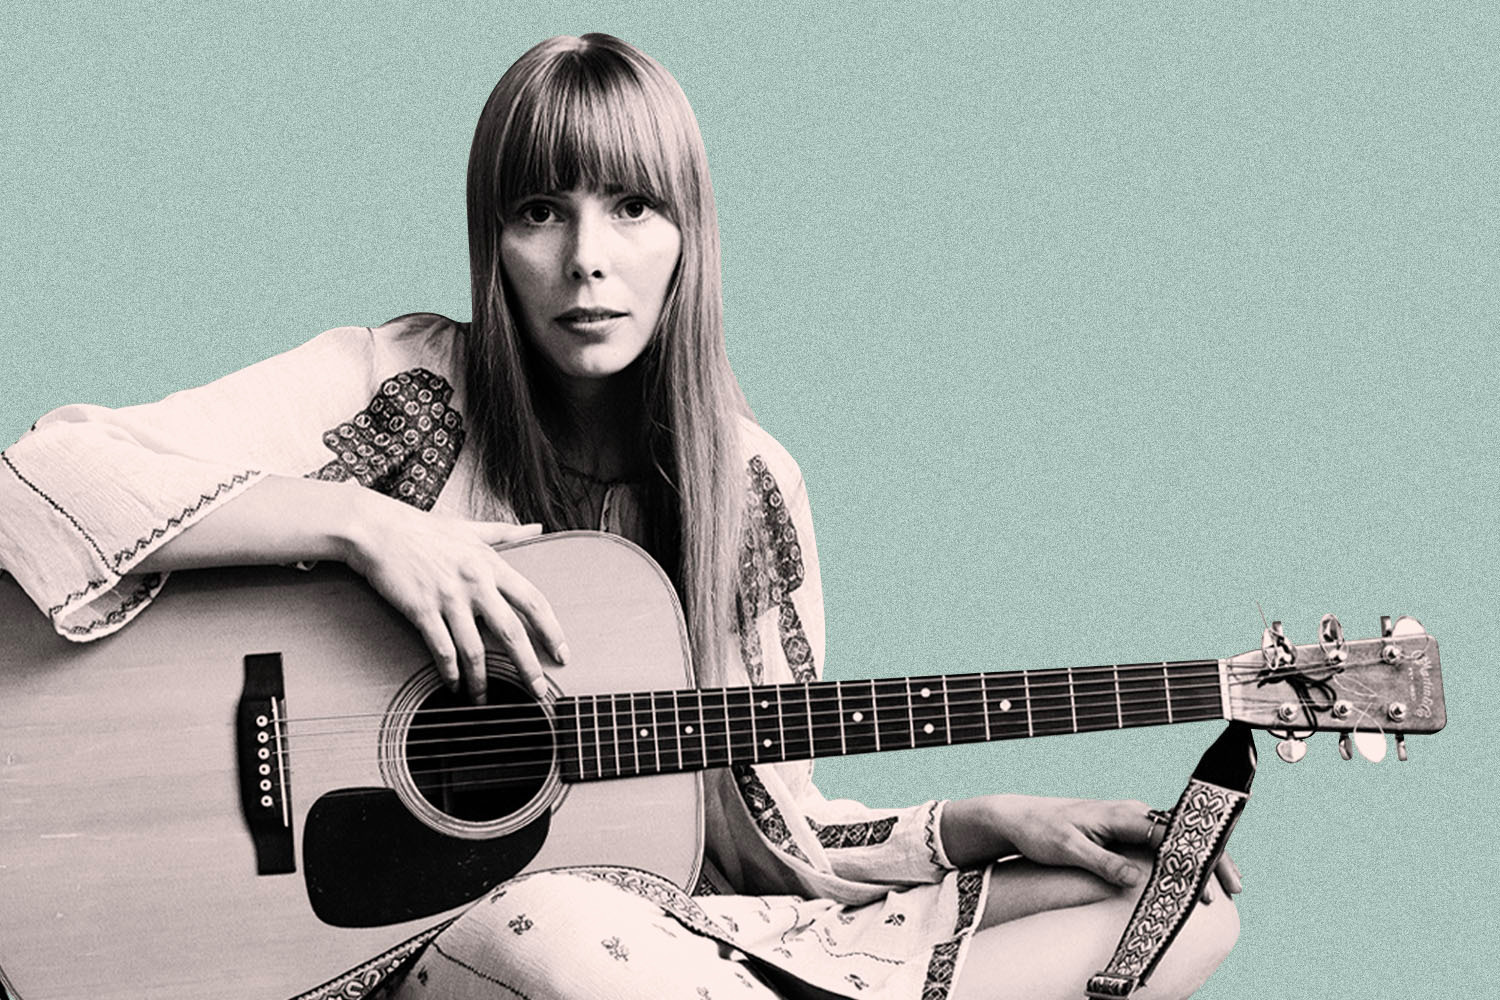 Black and white image of Joni Mitchell holding guitar, on light blue background